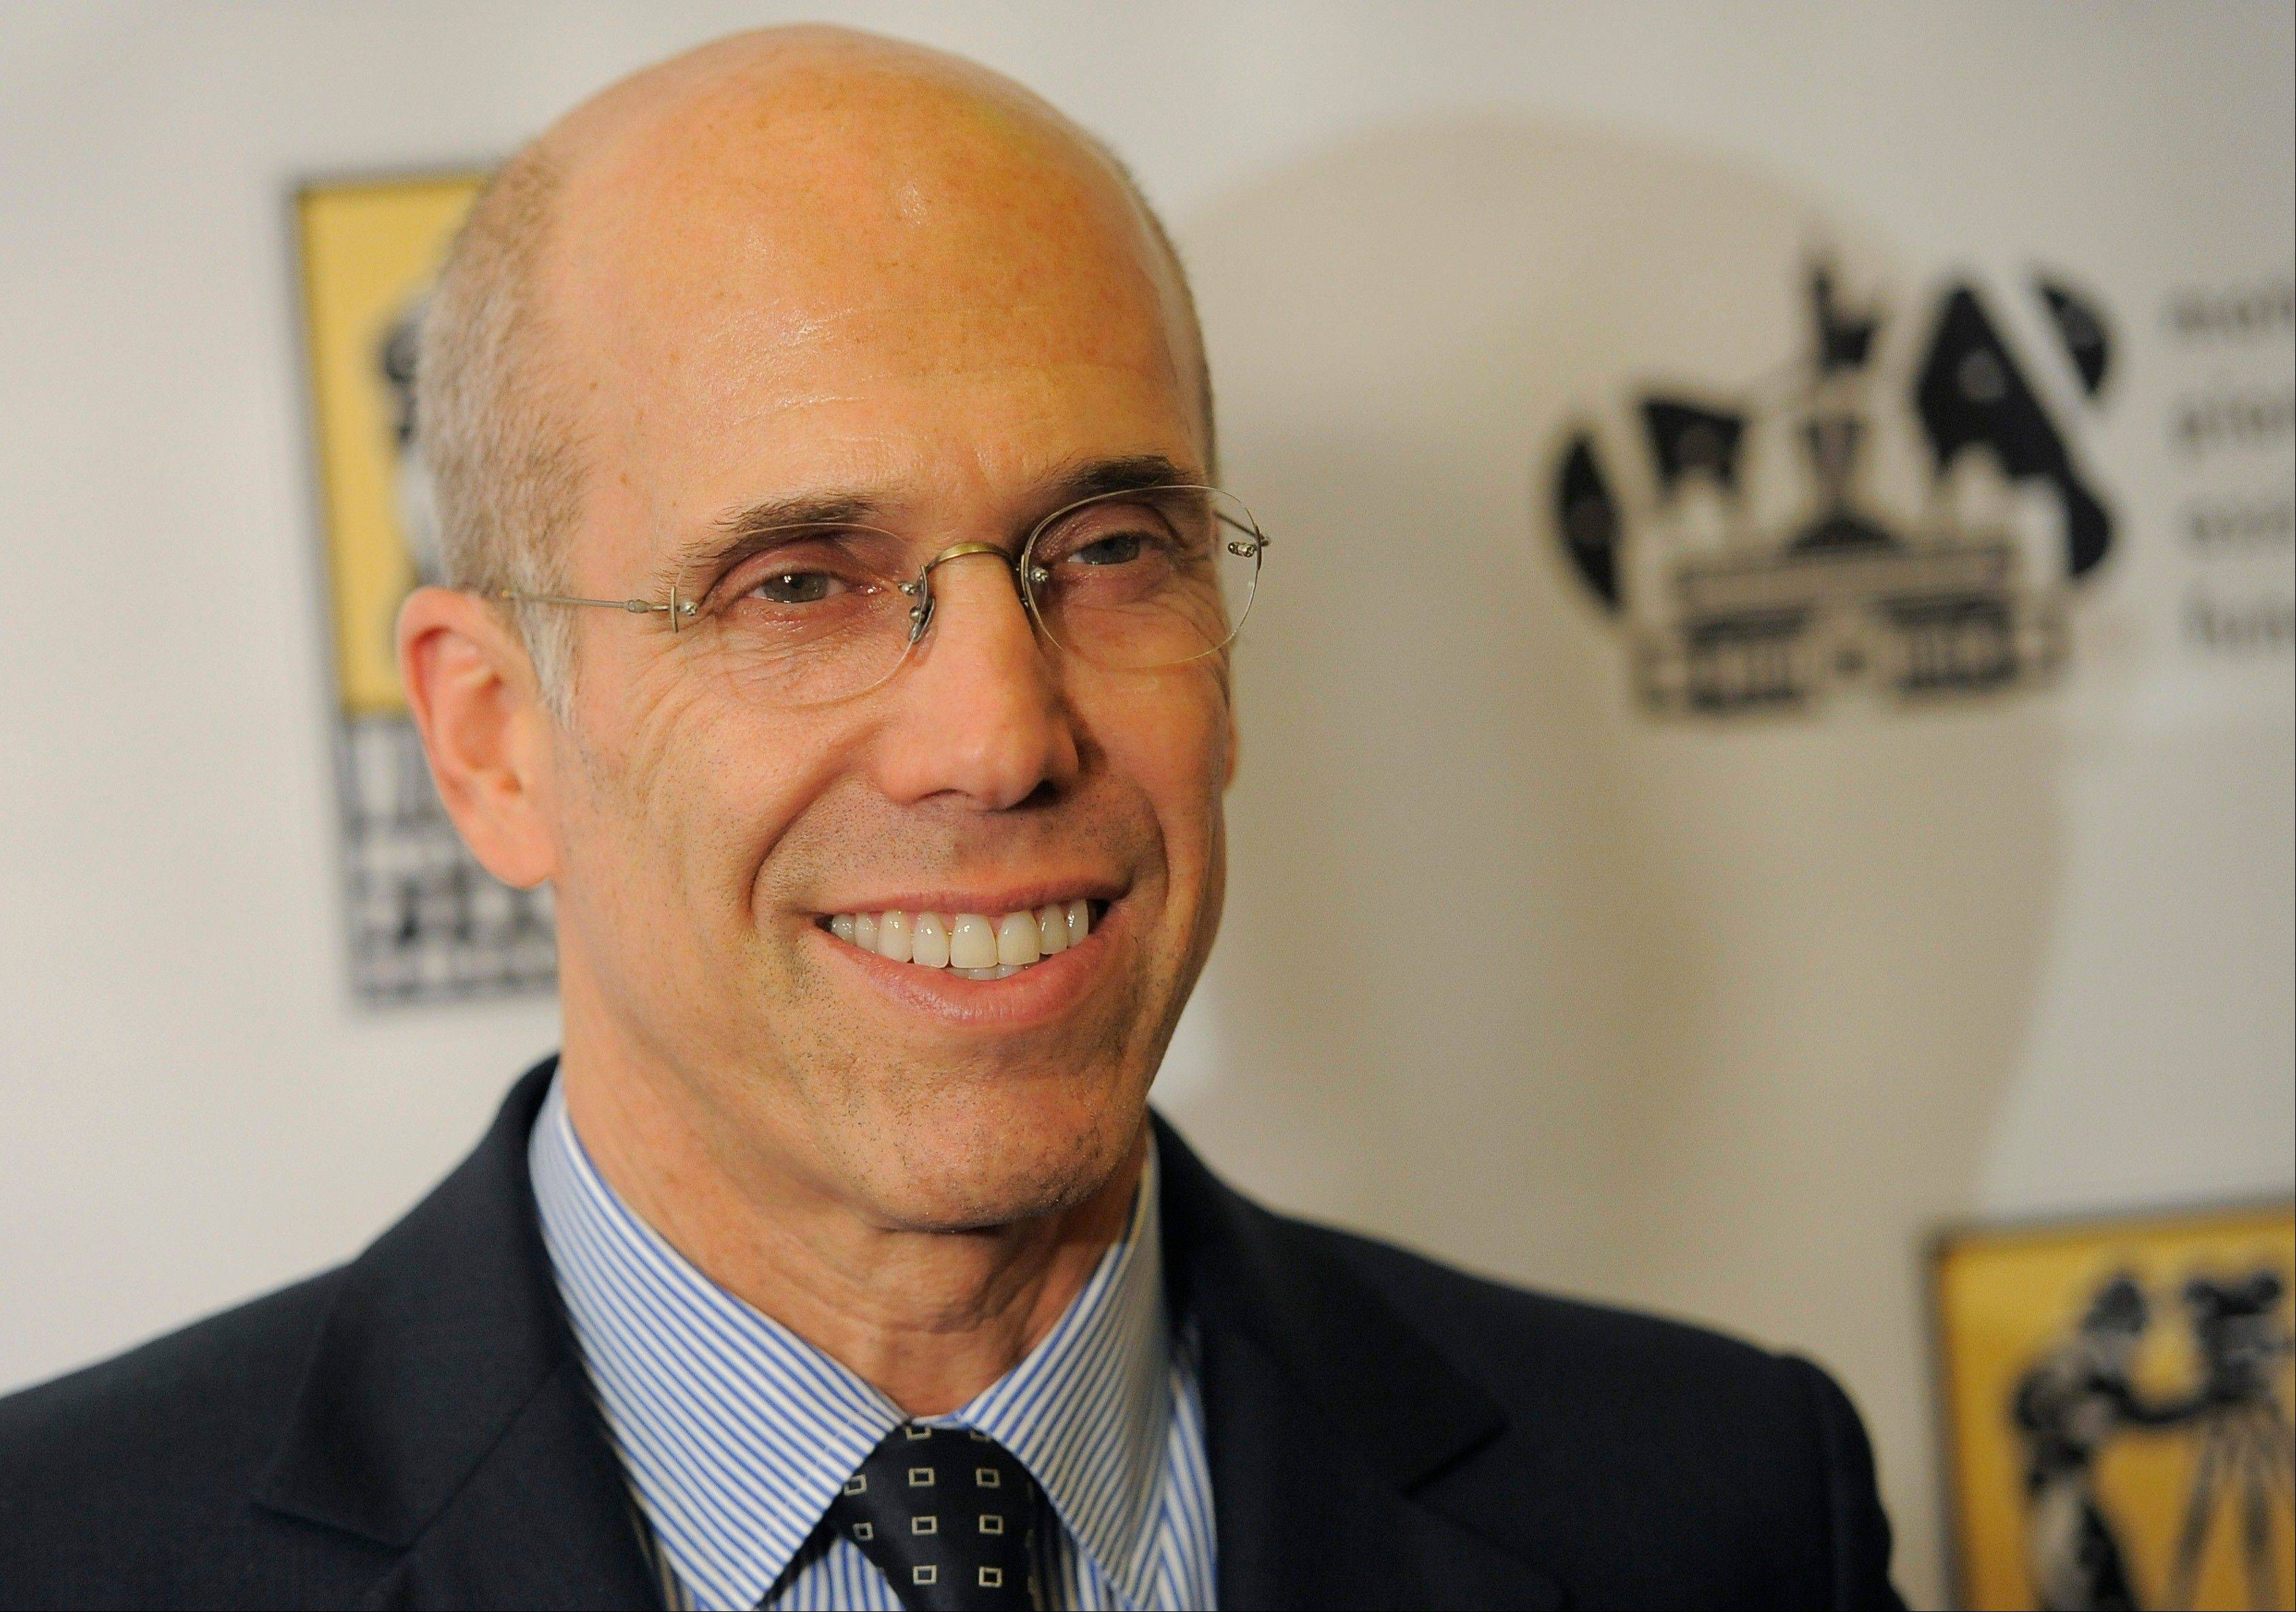 DreamWorks Animation CEO Jeffrey Katzenberg will be honored with the Jean Hersholt Humanitarian Award at the Academy of Motion Picture Arts and Sciences� 4th annual Governors Awards dinner set for Dec. 1.